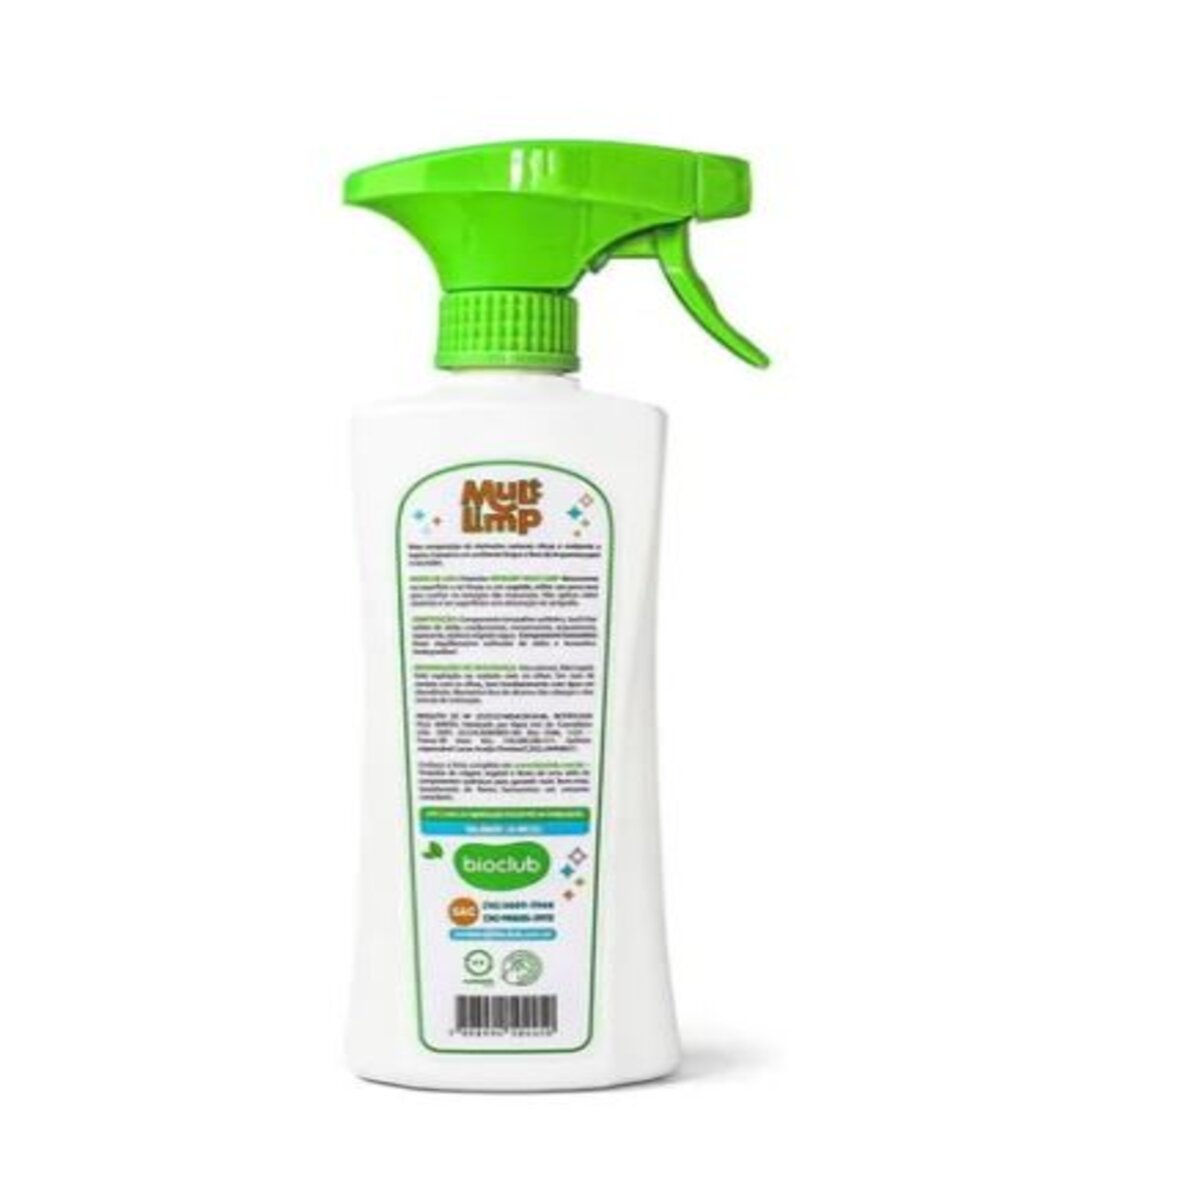 Spray Multi Limpeza de Superfícies 500 ml - BioClub